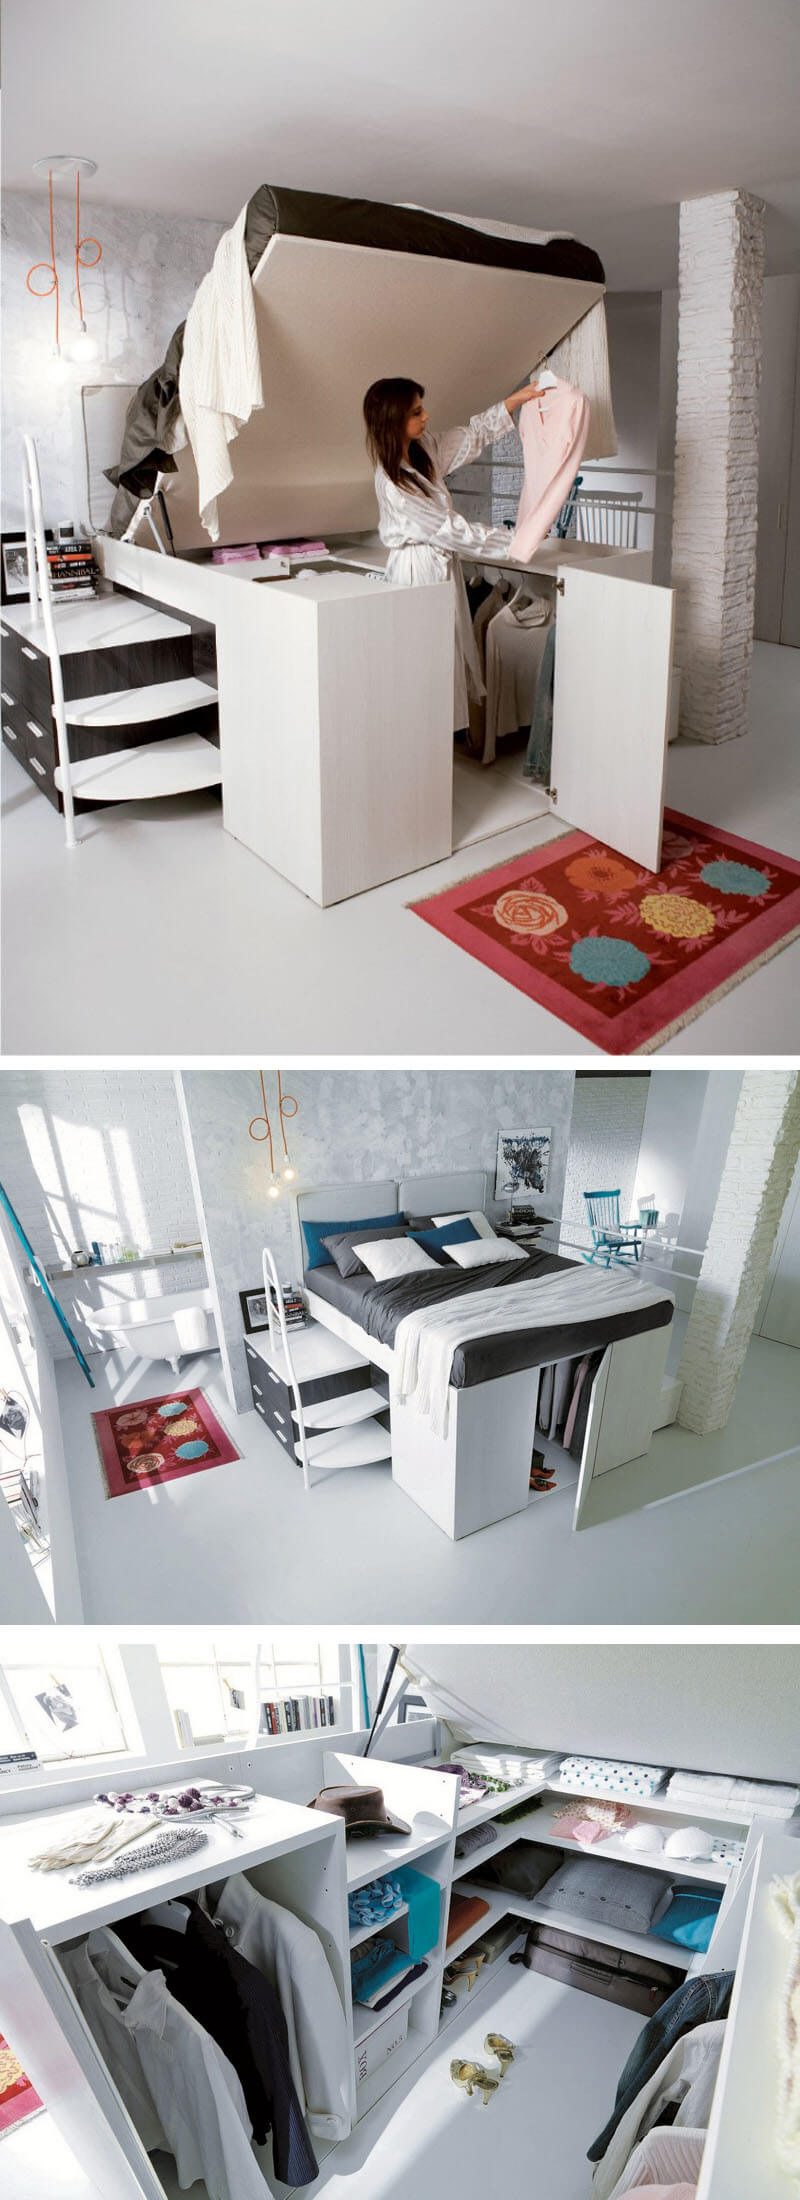 Bed And Closet Combo